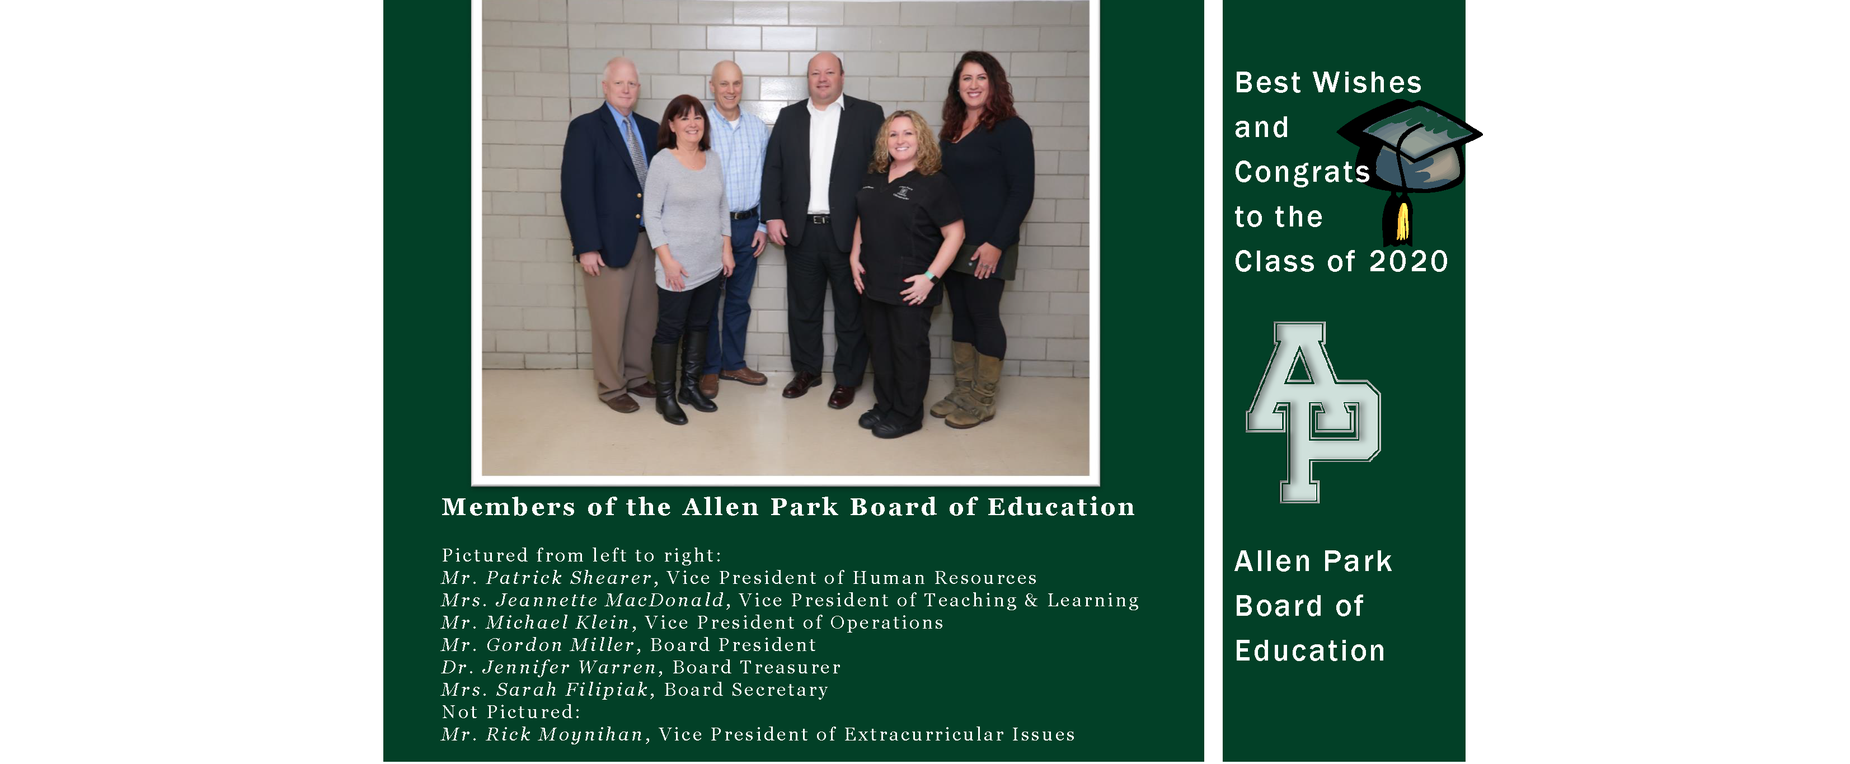 Board of Education wishes all the best to the Class of 2020